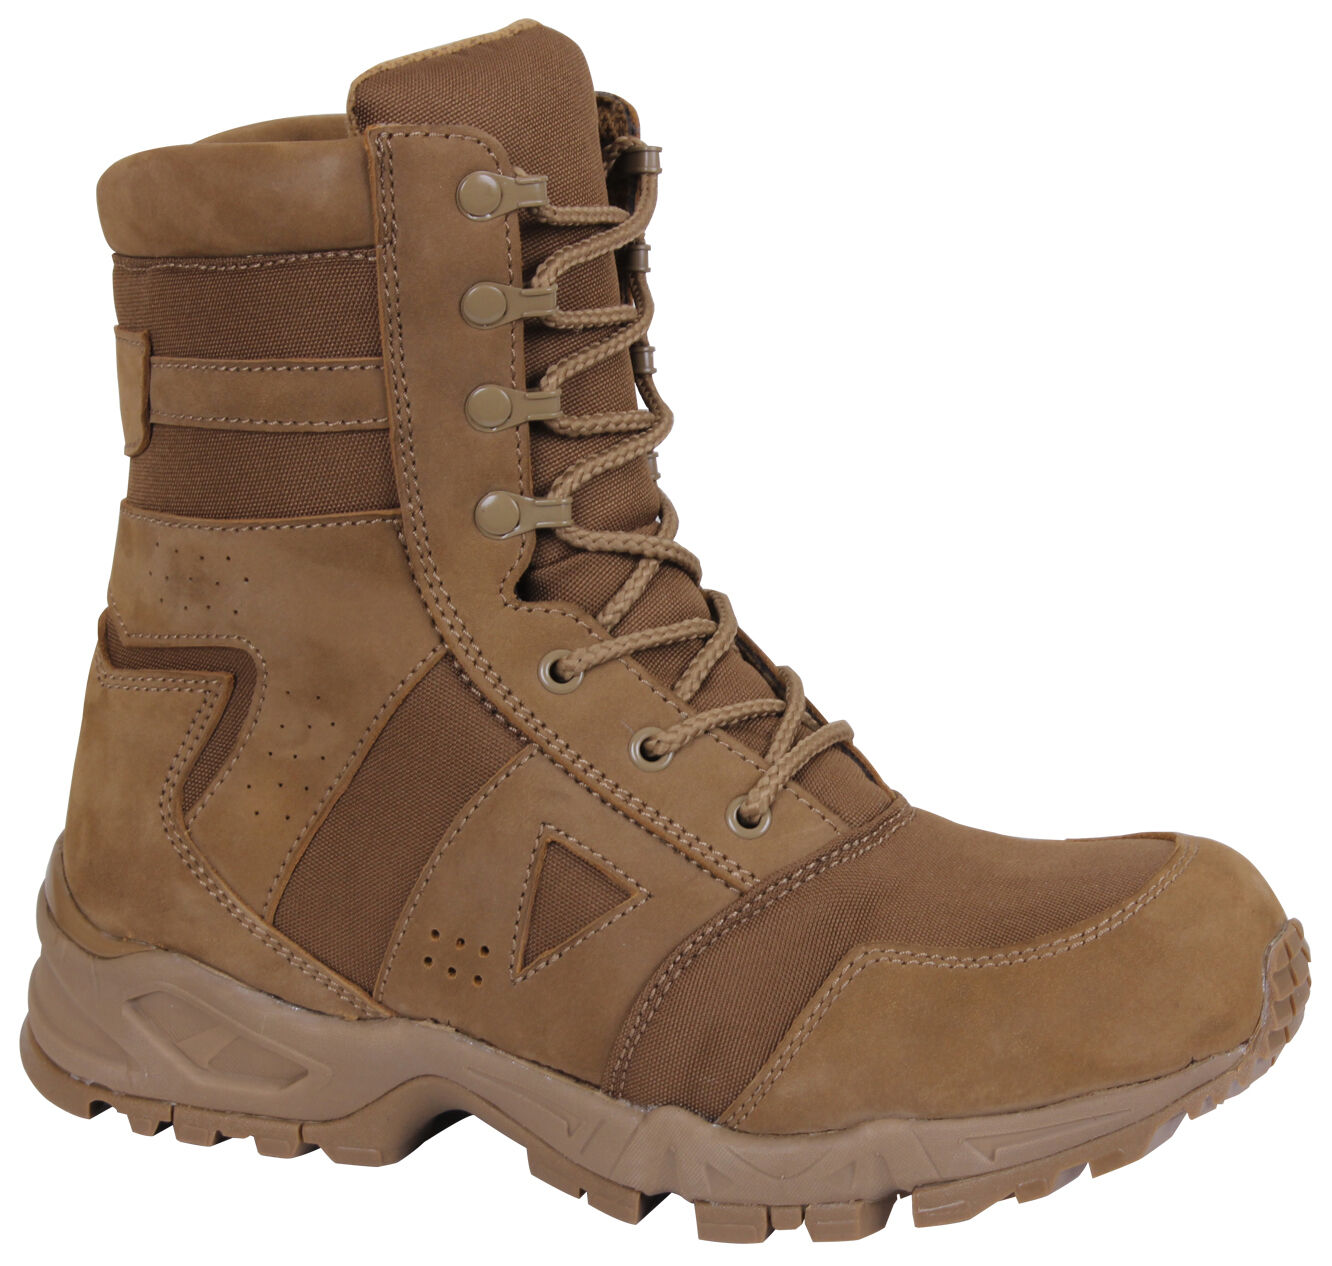 AR 670-1 Forced Entry Boots Coyote Tactical US Army Boot 8  redhco 5361